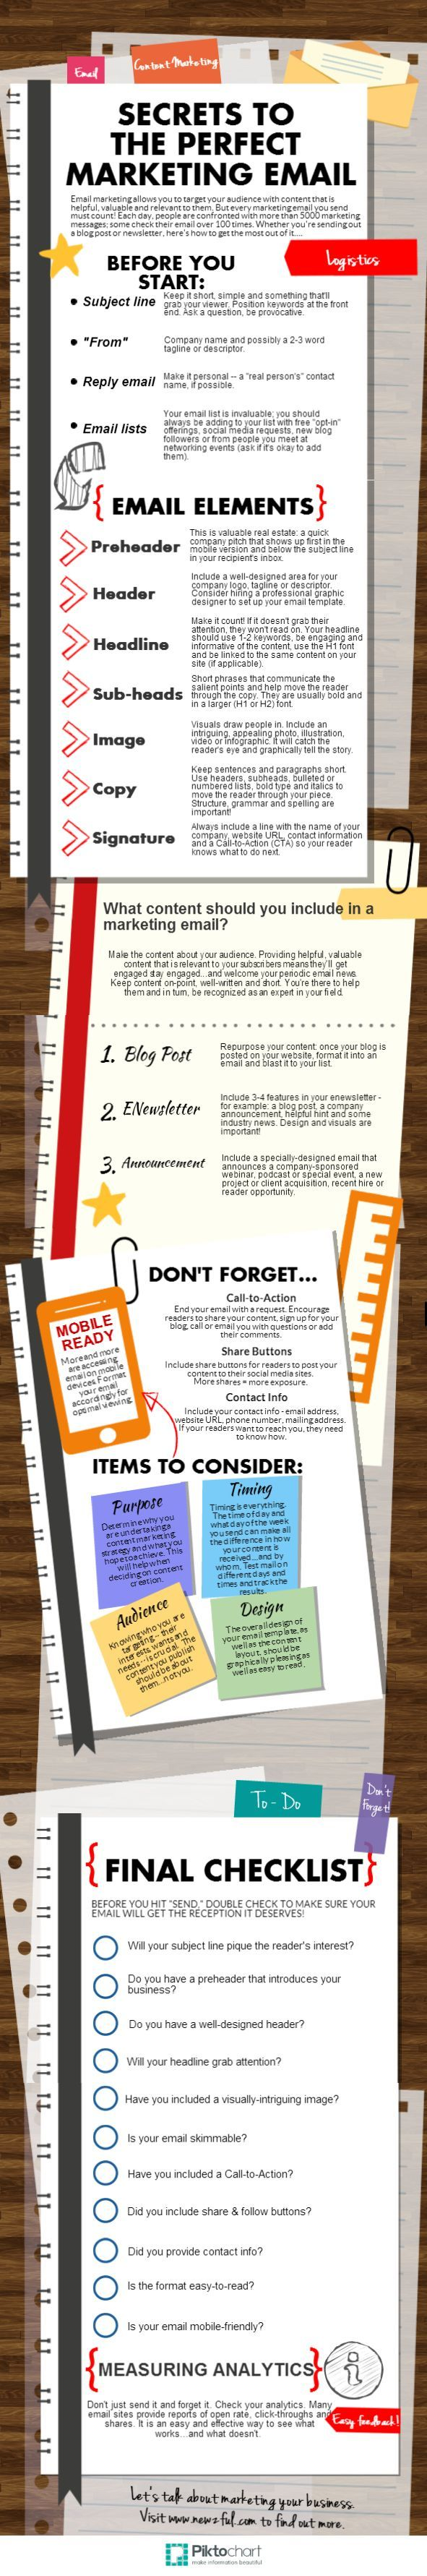 Secrets to the perfect marketing email by Piktochart